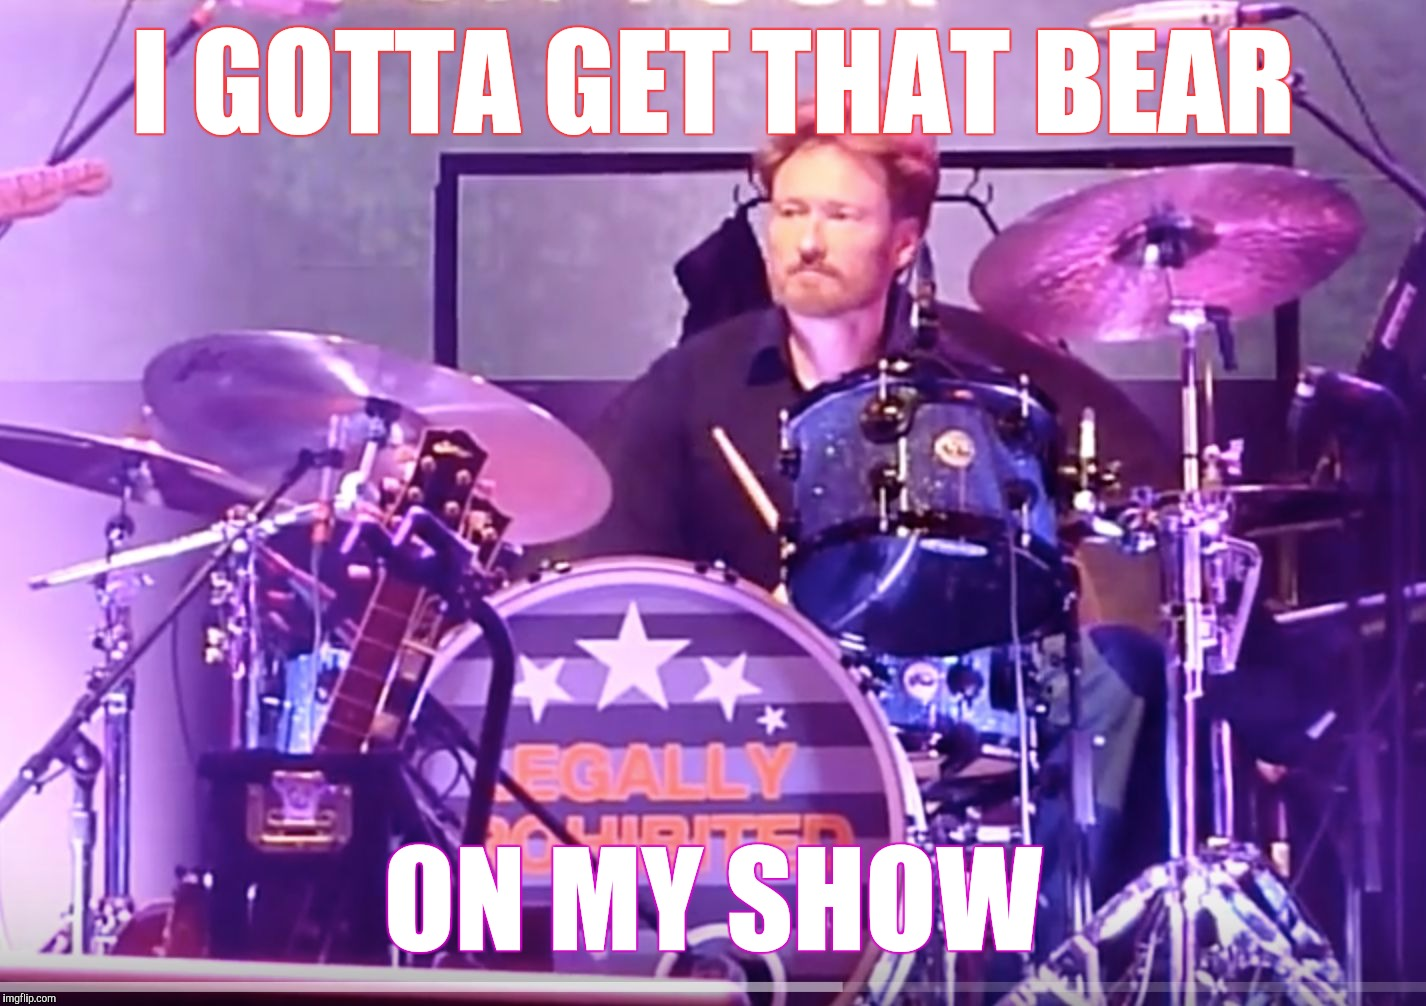 Memes, drums | I GOTTA GET THAT BEAR ON MY SHOW | image tagged in memes,drums | made w/ Imgflip meme maker